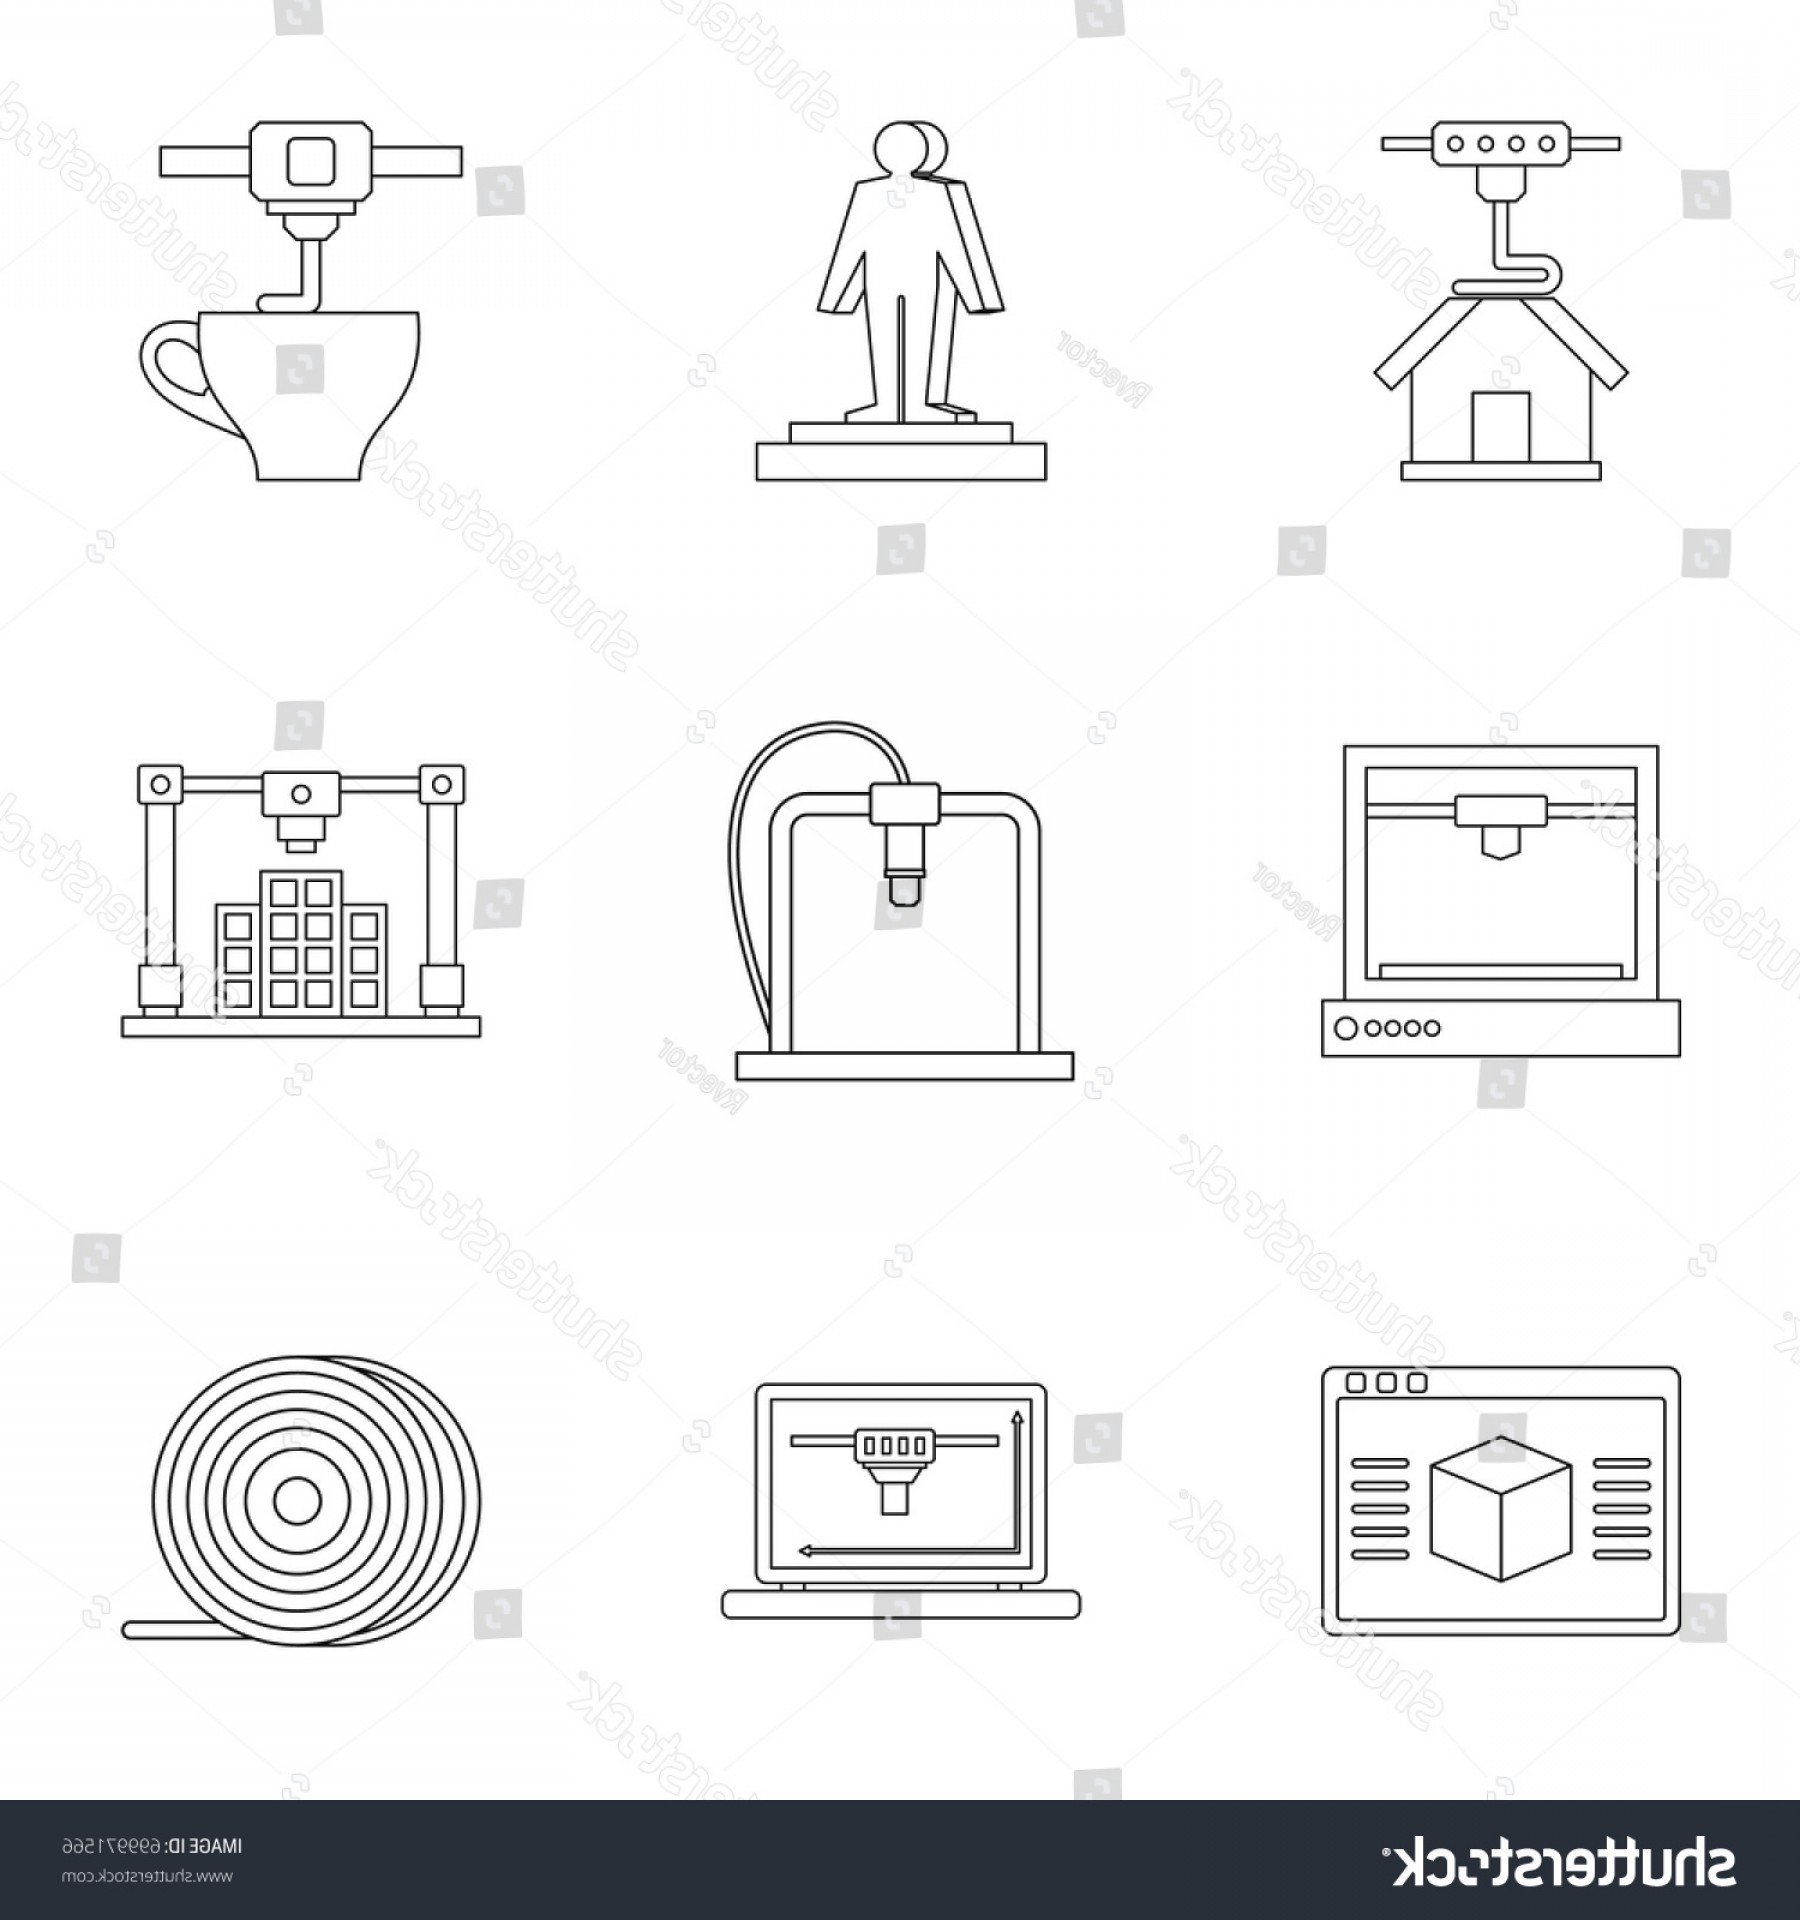 D Night Stanf Vector Graphic: D Printer Construct Icon Set Outline